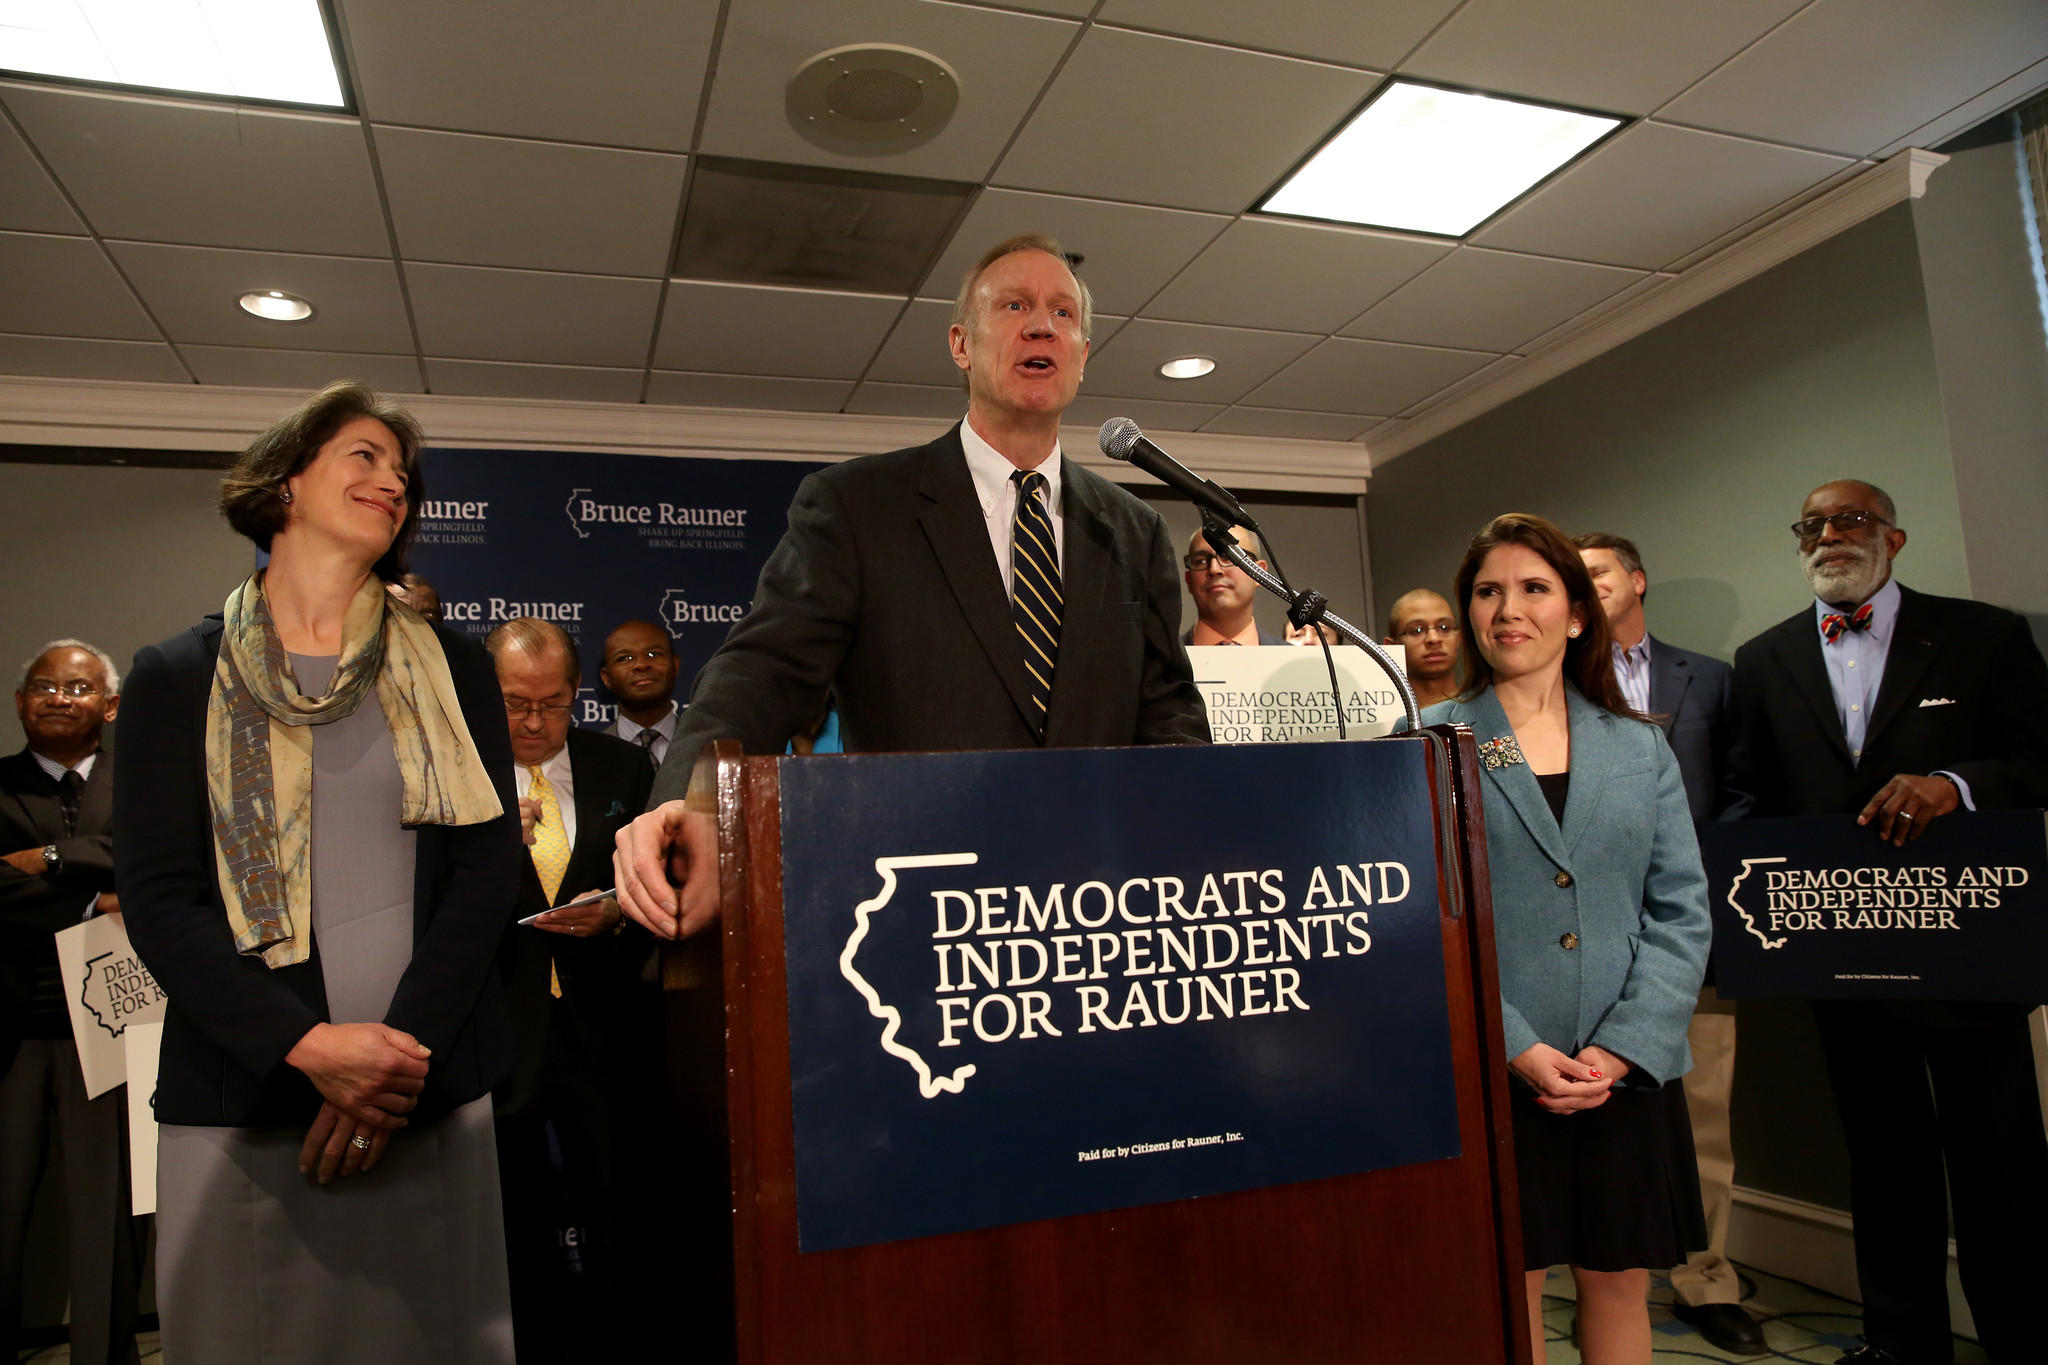 Republican gubernatorial candidate Bruce Rauner, flanked by his wife Diana, left, and running mate Evelyn Sanguinetti, holds a press conference at the Allegro Hotel in Chicago to announce a group of nearly two dozen Democrats and independents backing his campaign.